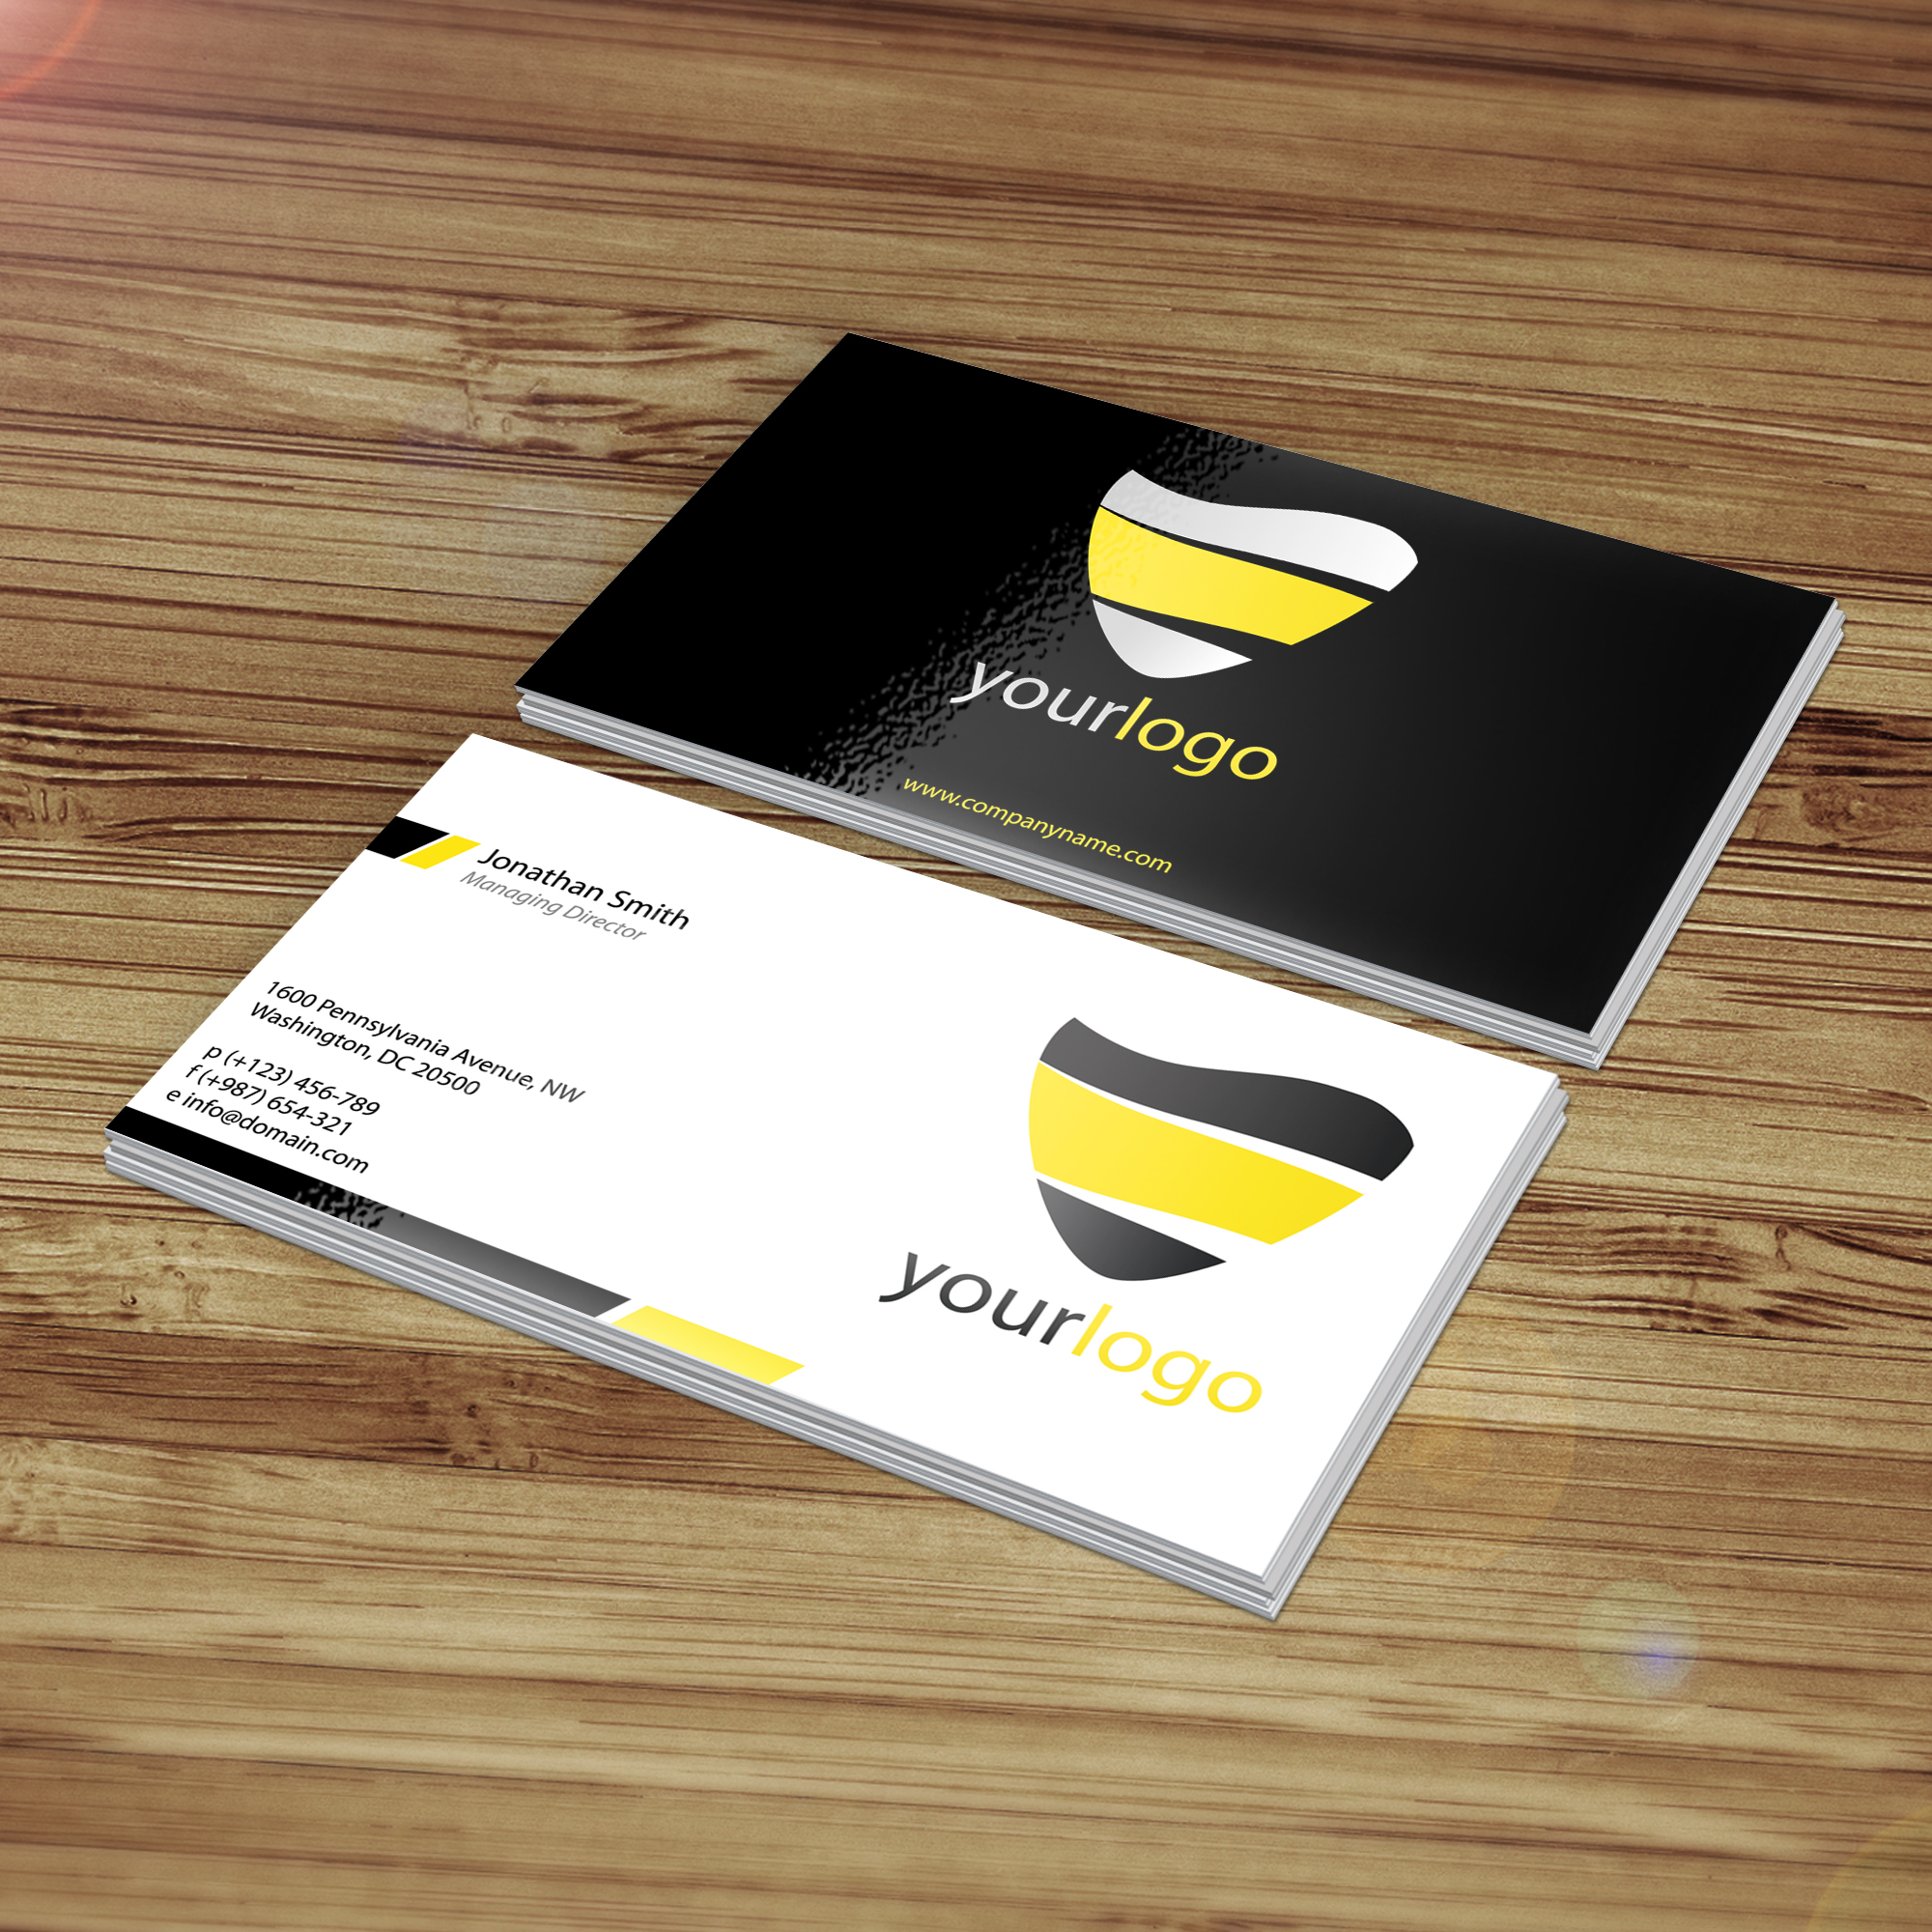 Business Card Mockup by SectorTech on DeviantArt